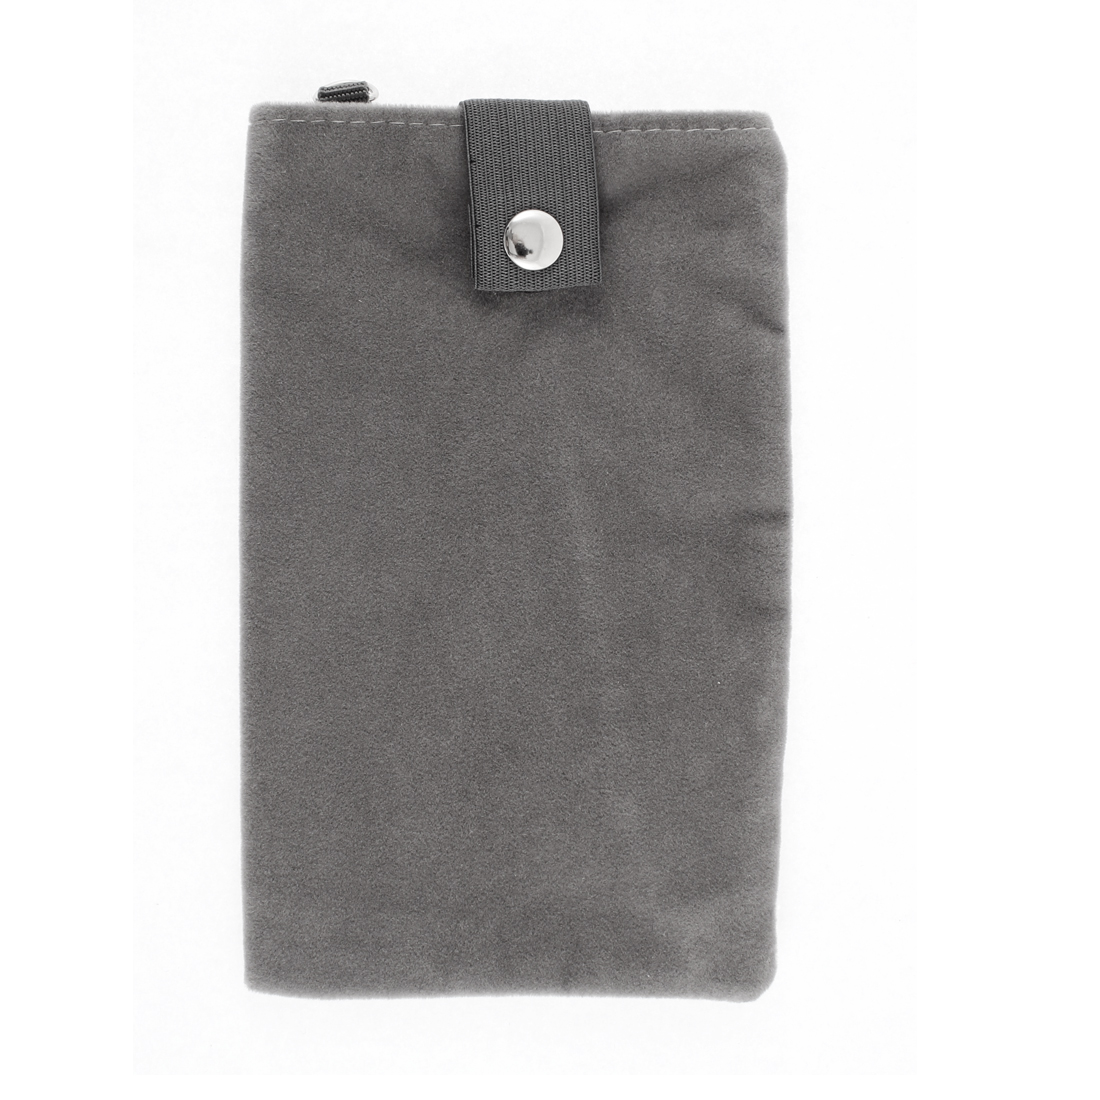 Velvet Dual Layer Mobilephone Cell Phone Pouch Sleeve Bag Dark Gray 18x11cm